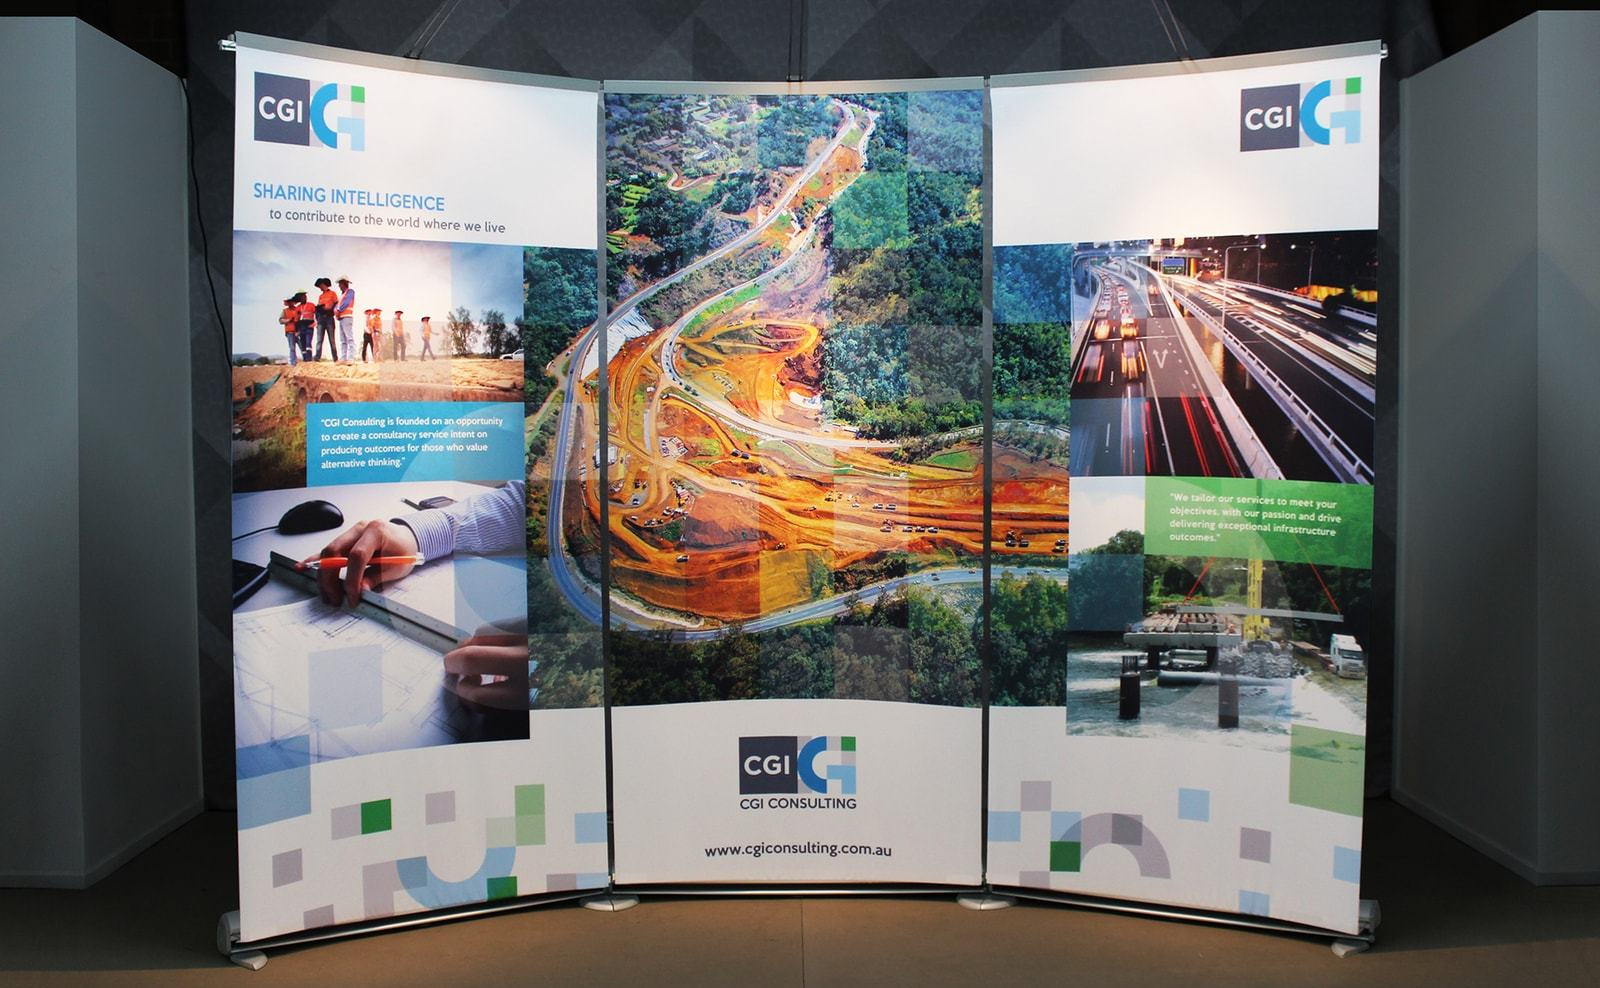 cgi consulting banner stand display